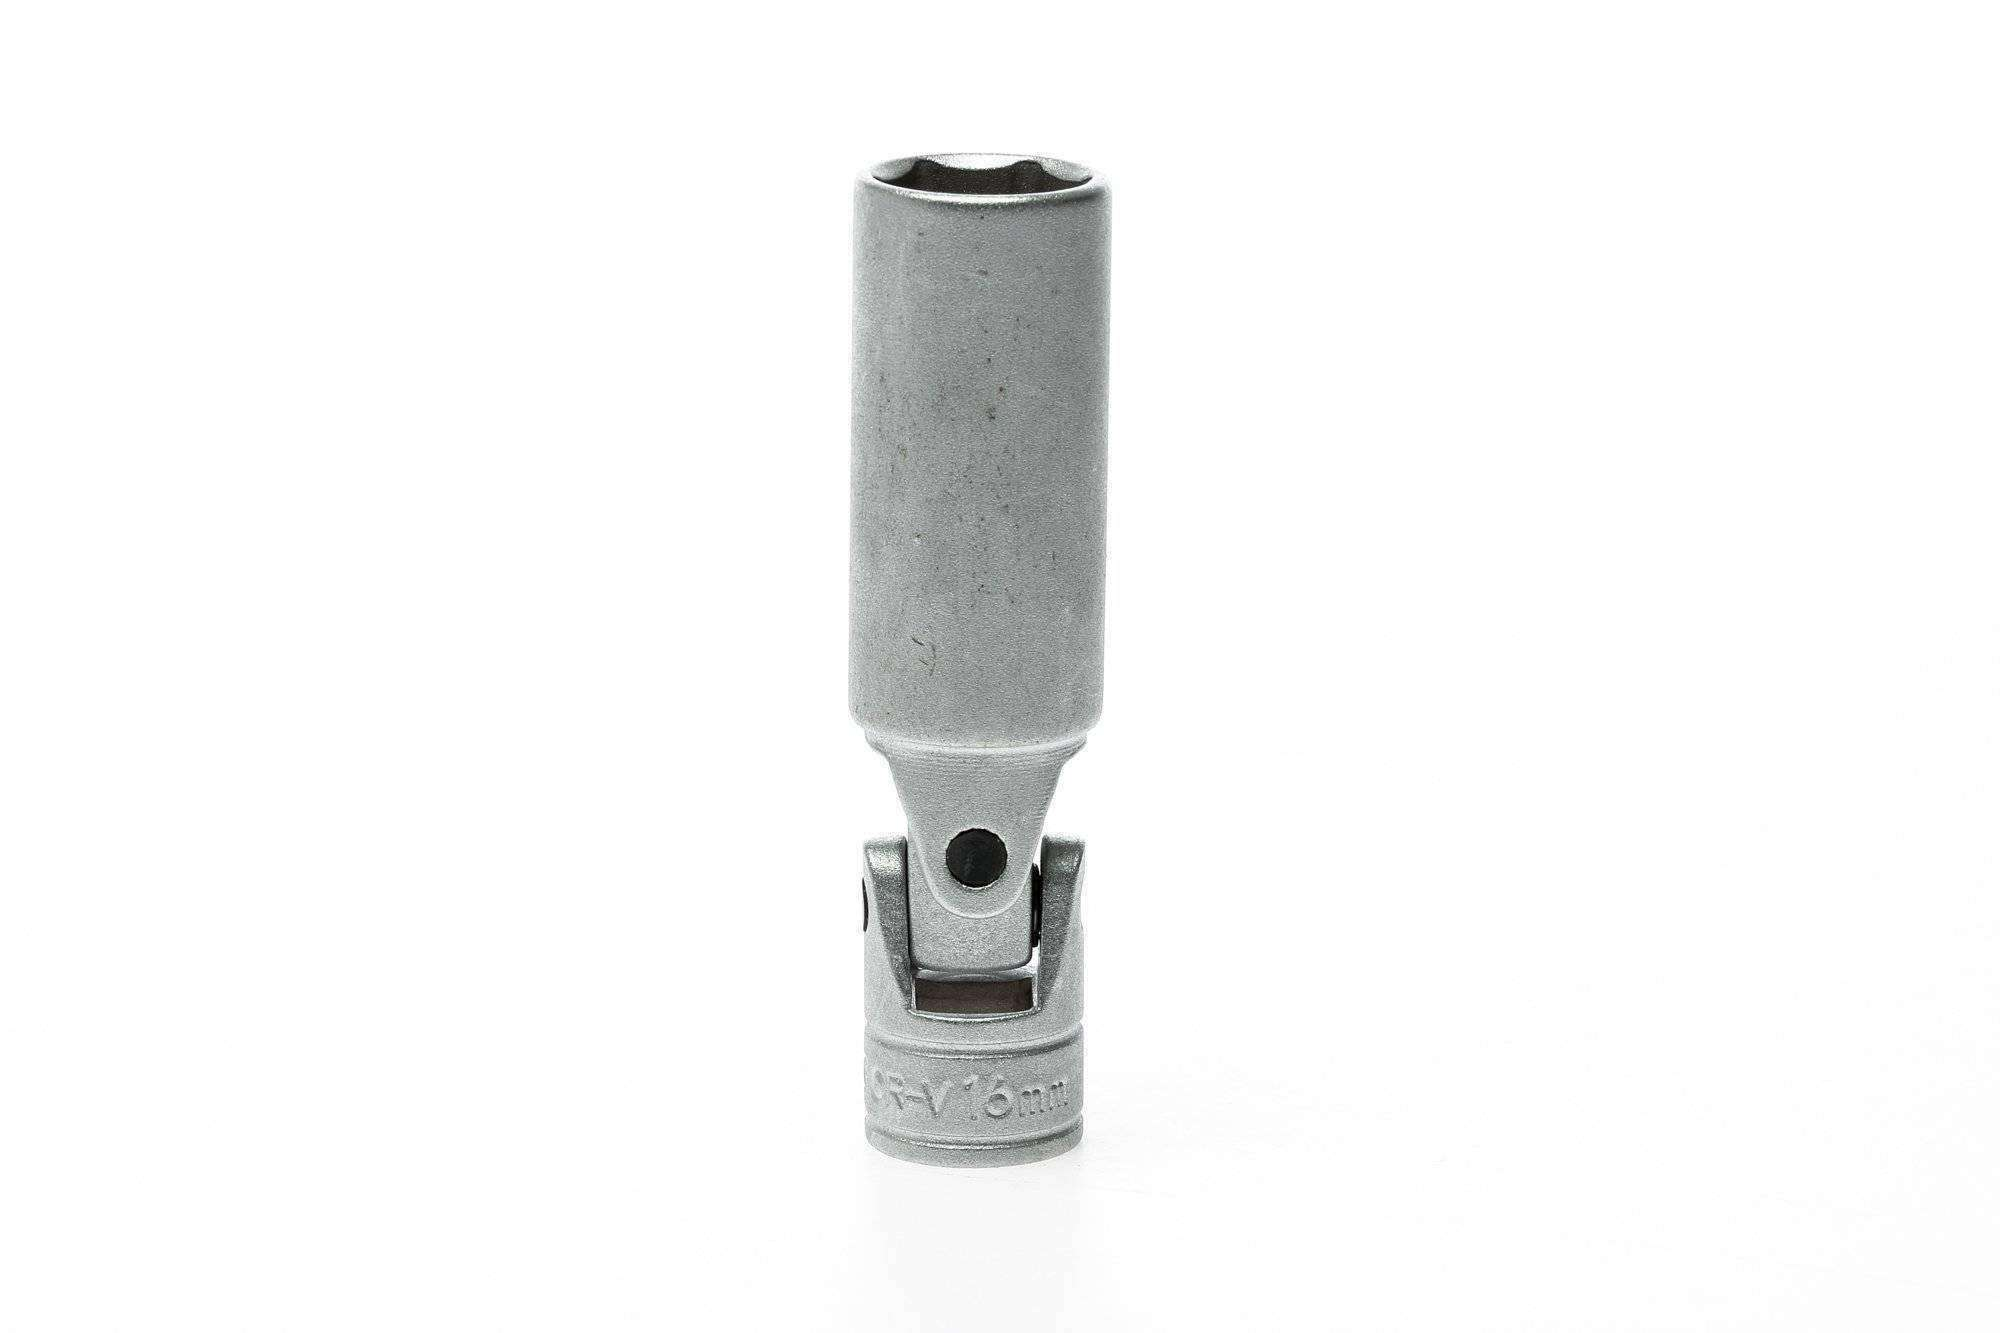 Teng Tools - 16mm 3/8 Inch Drive 6 Point Flexible Spark Plug Socket - M380041-C - Teng Tools USA